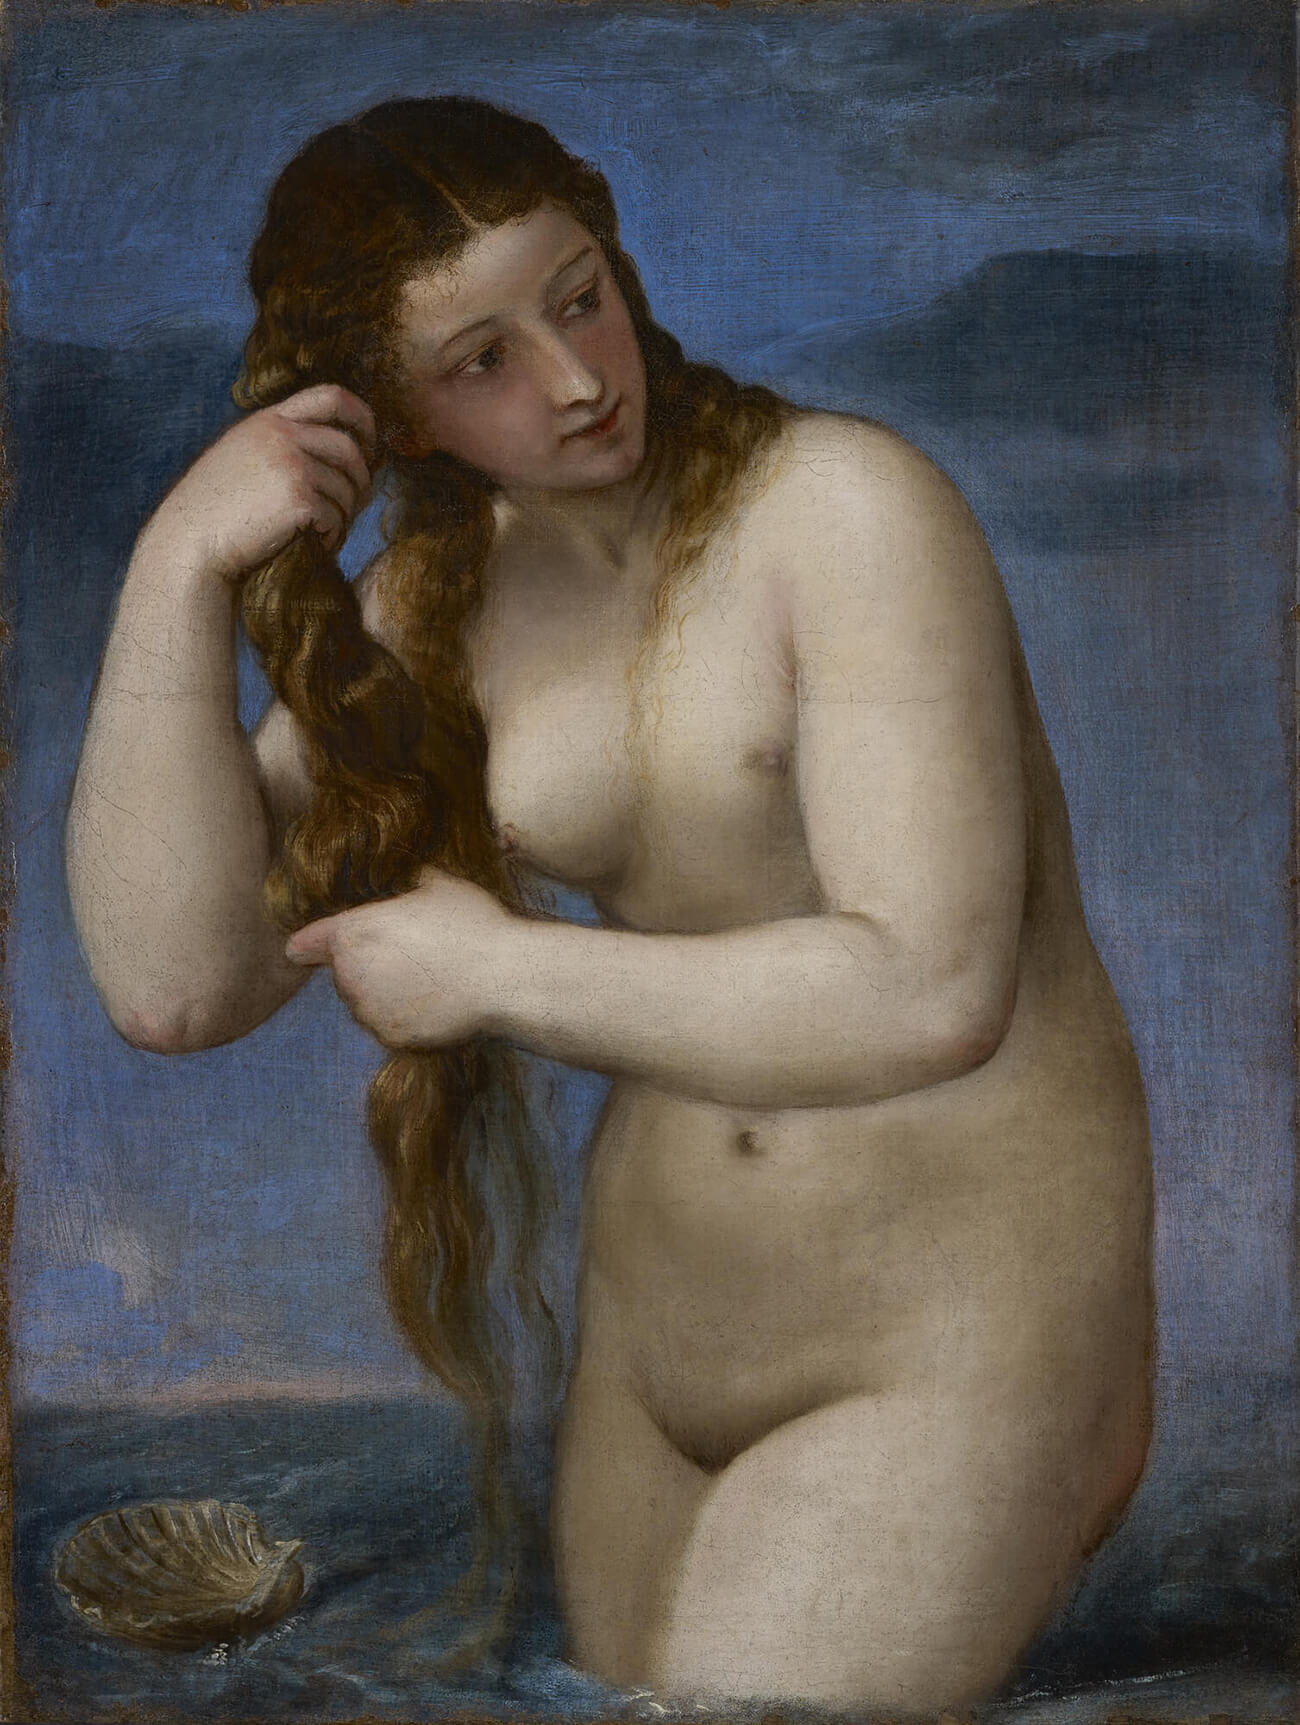 Nude Venus standing in water beside a shell, wringing water from her hair.